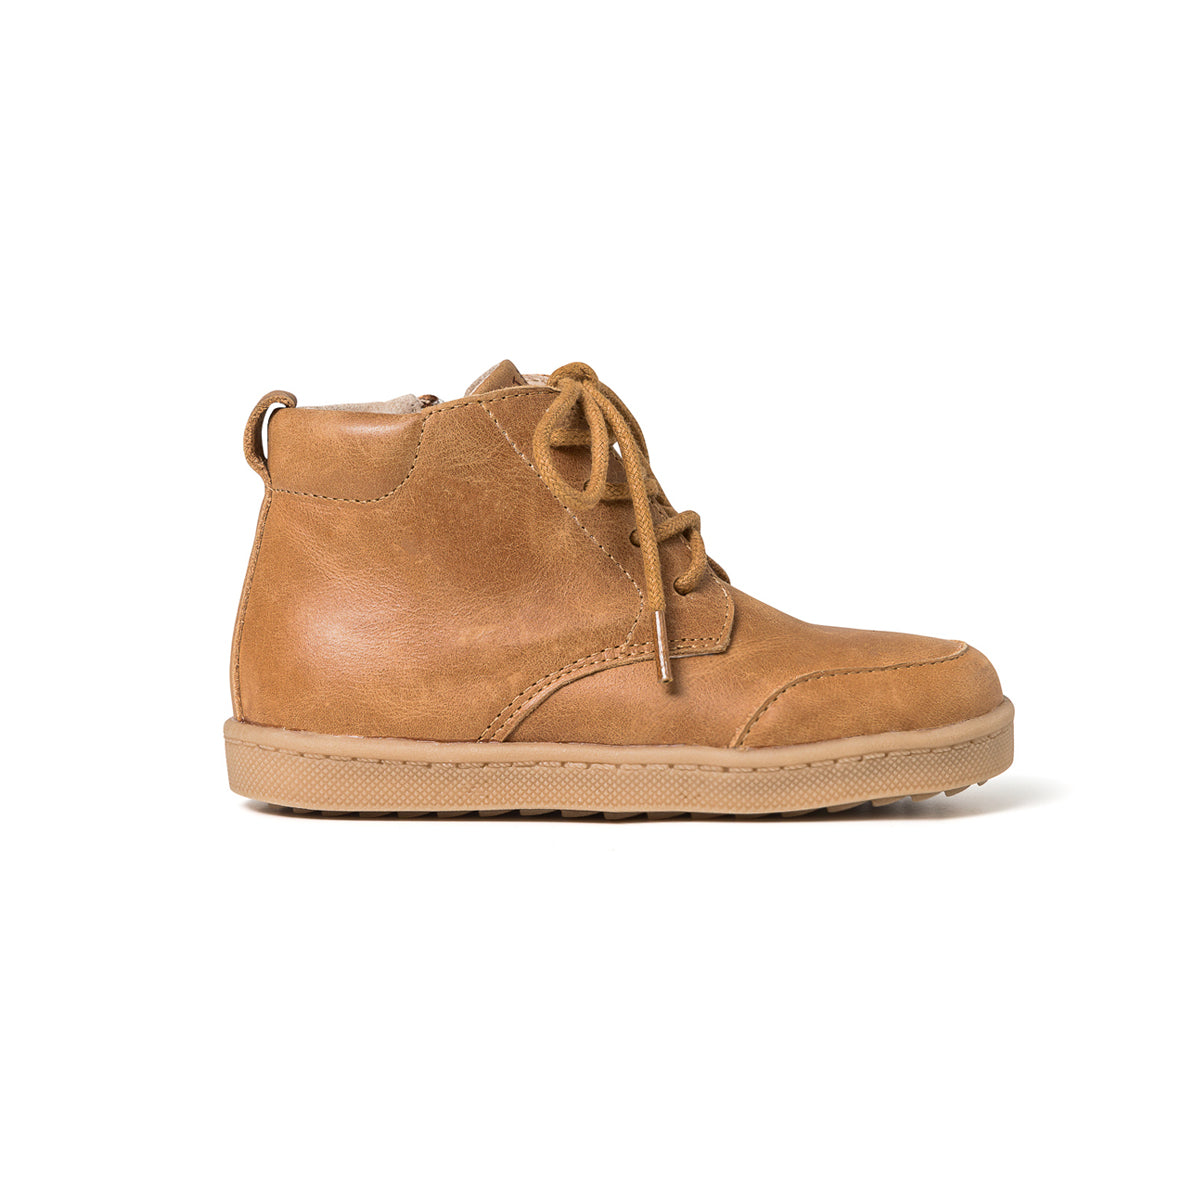 Archie Toddler Boot Tan